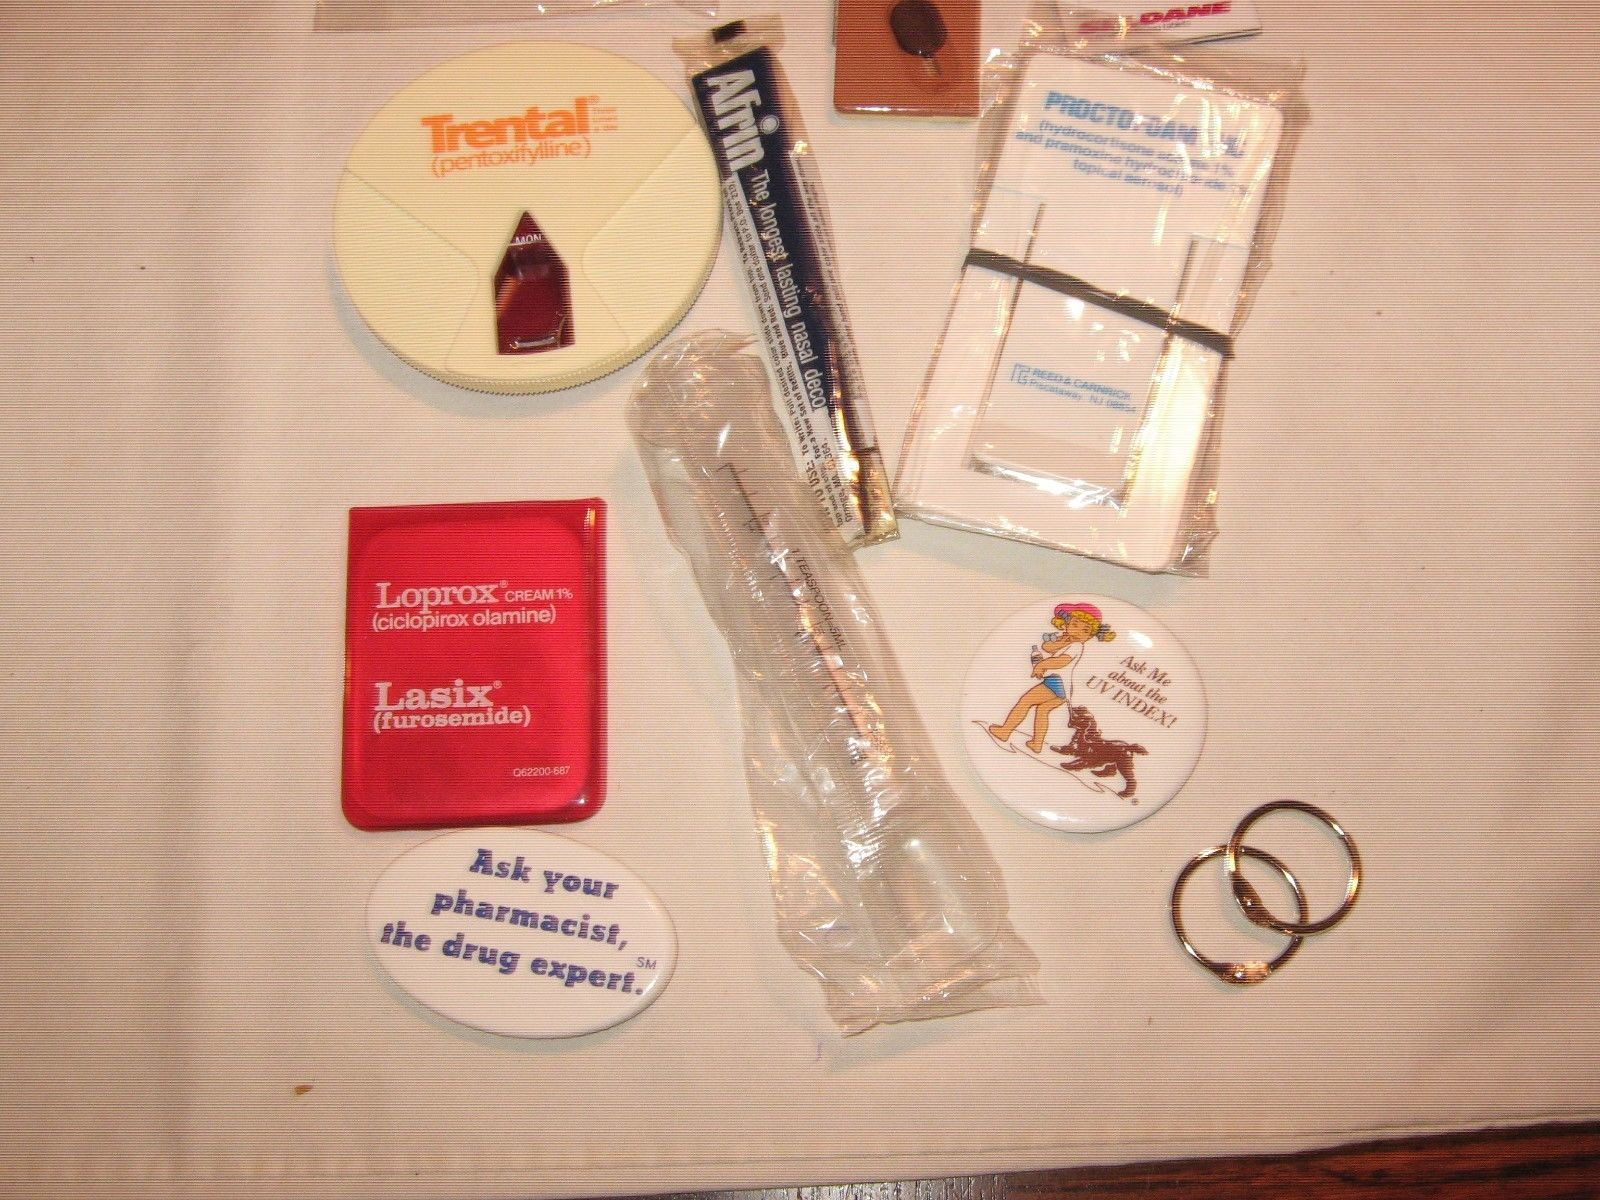 Rx, Pharmacy Promotional Items, Mixed Lot , Advertisment Promos image 5